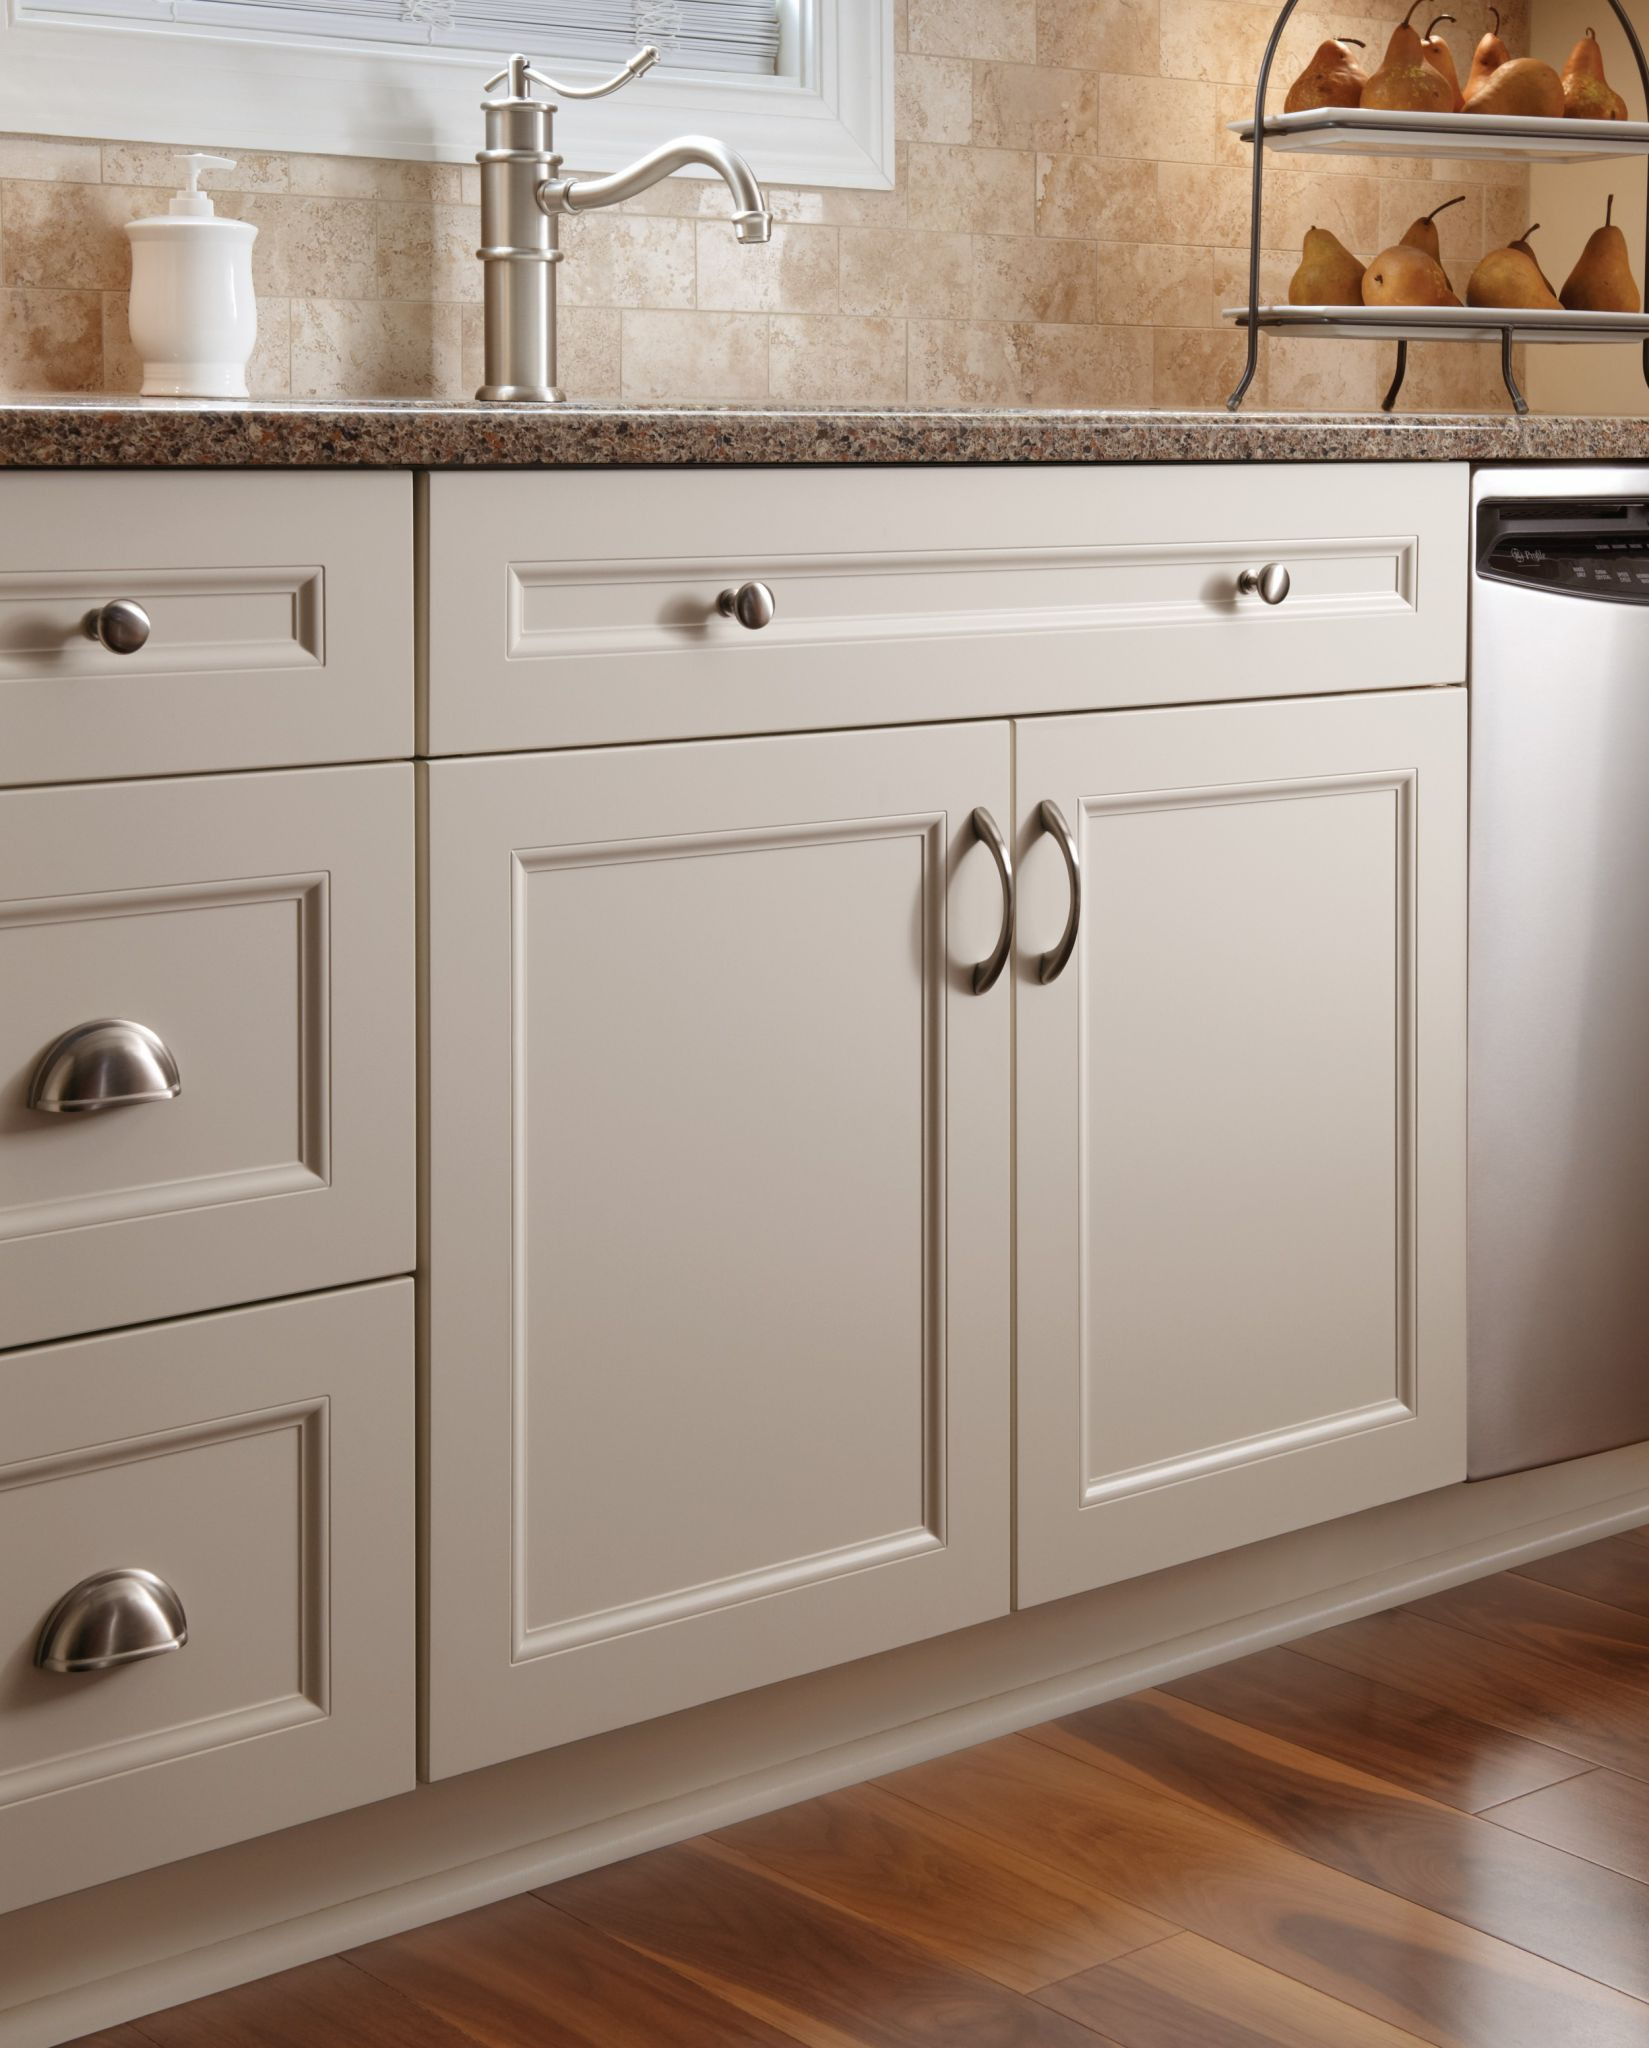 Where to Put Knobs On Cabinet Doors Awesome Cabinet Hardware Placement